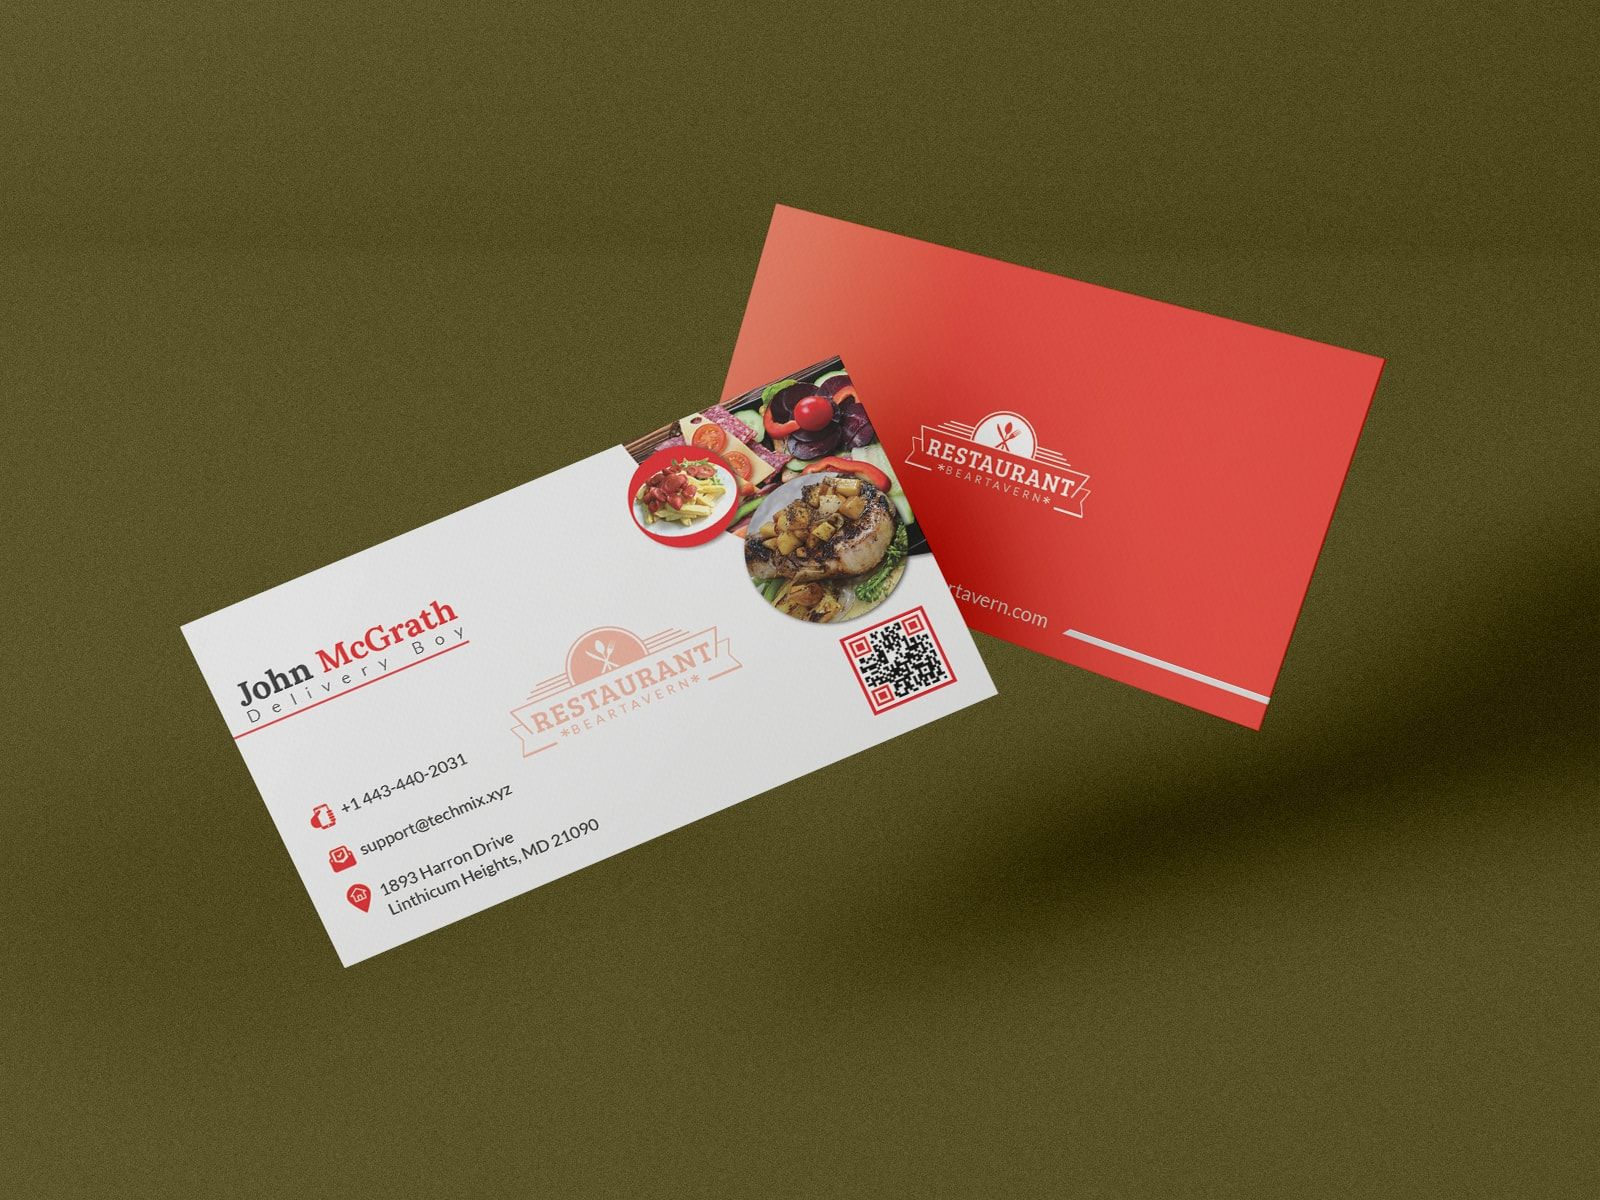 Delivery Boy Business Card Restaurant Business Cards Spa Business Cards Design Spa Business Cards